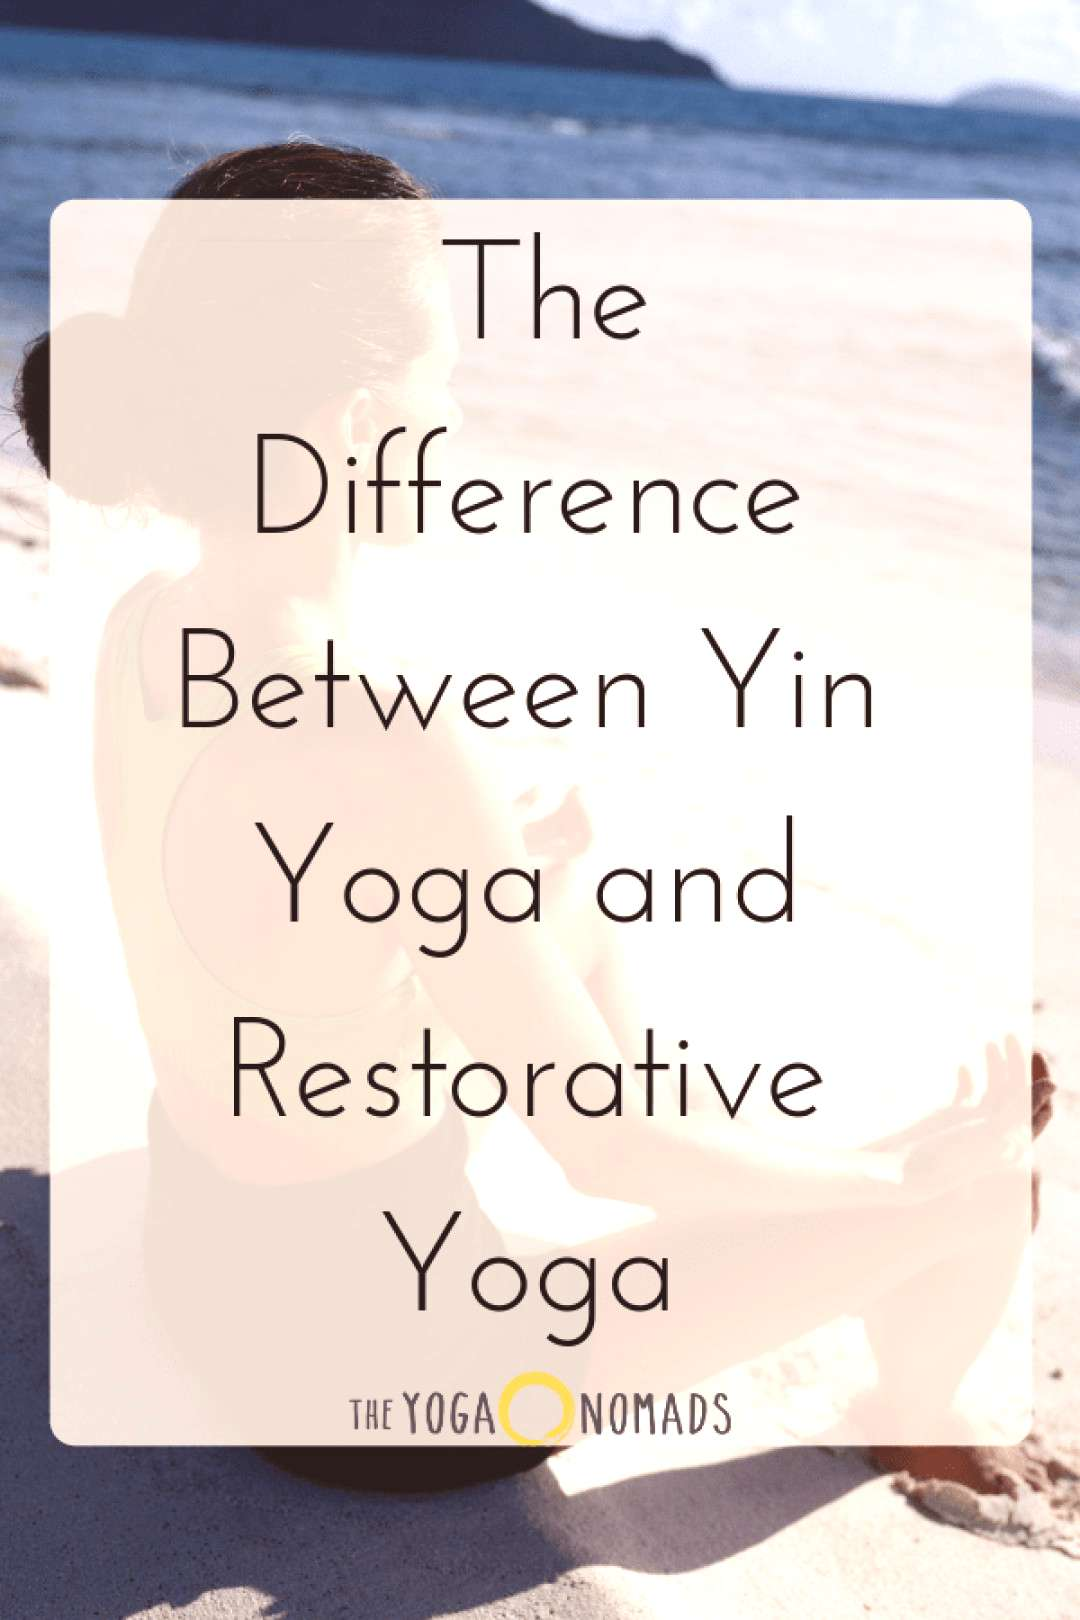 The Difference Between Yin Yoga and Restorative Yoga. People dont know that Yin Yoga and Restorati